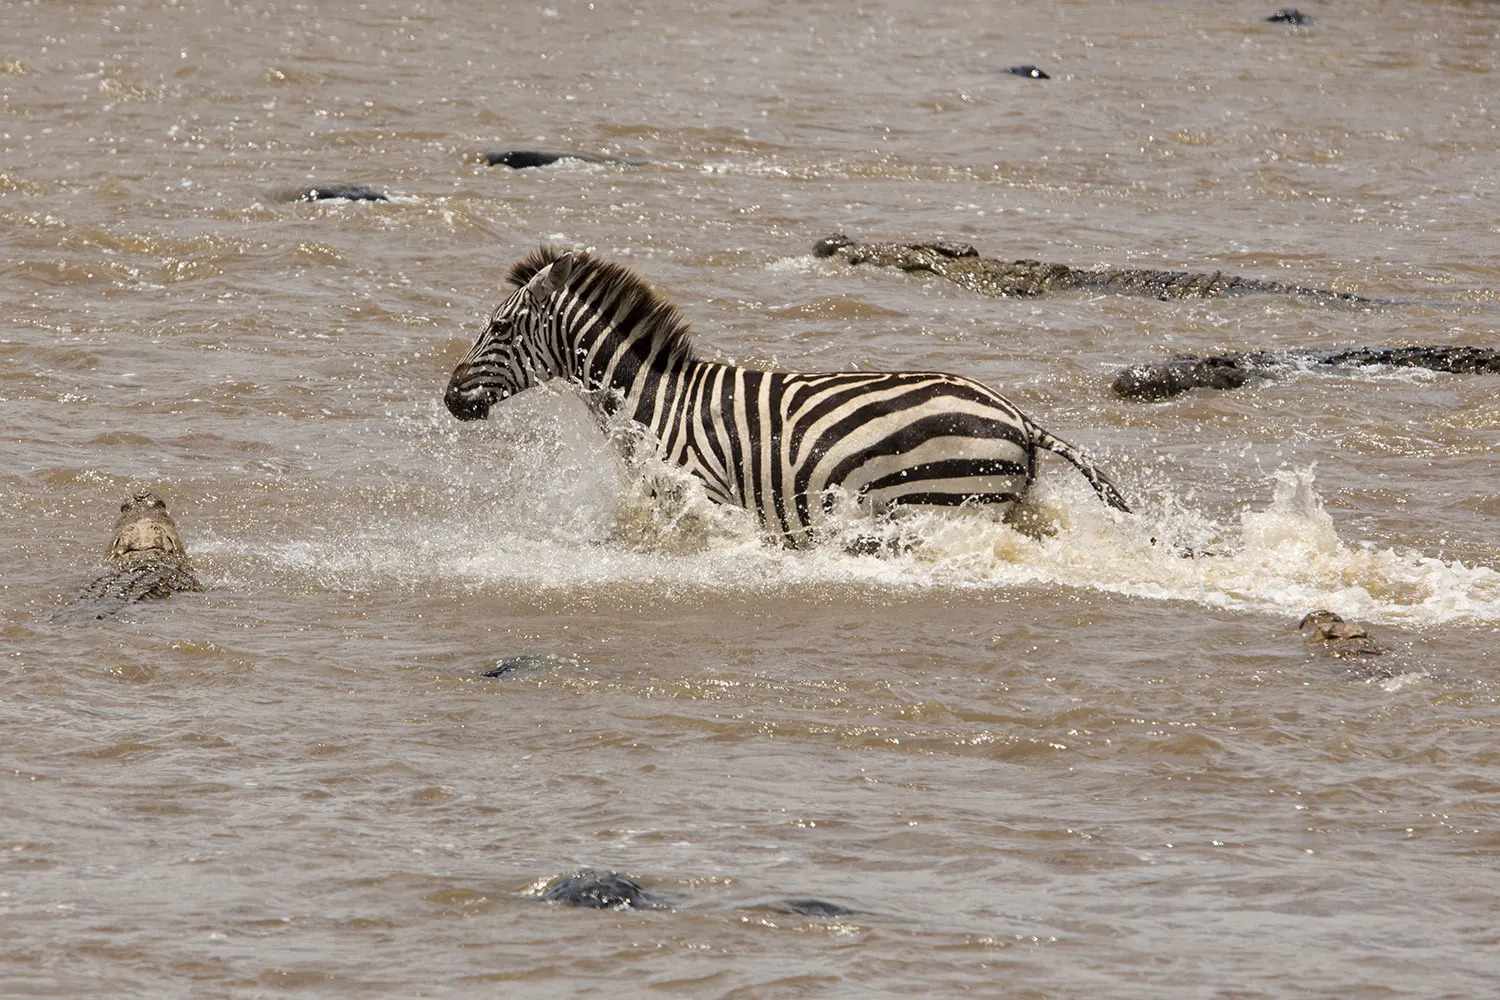 Zebra and crocs surround